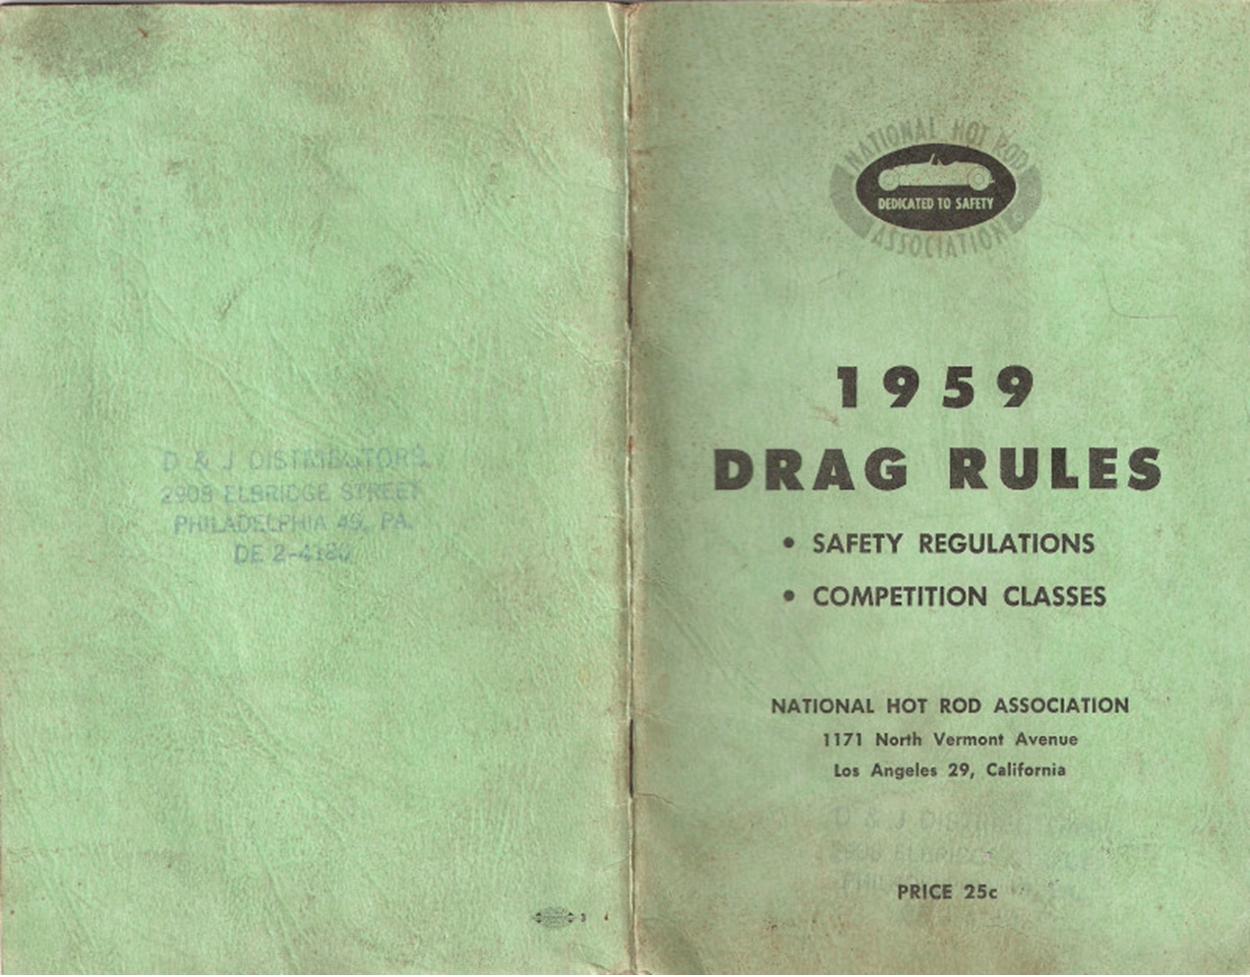 1959 Drag Rules-page01